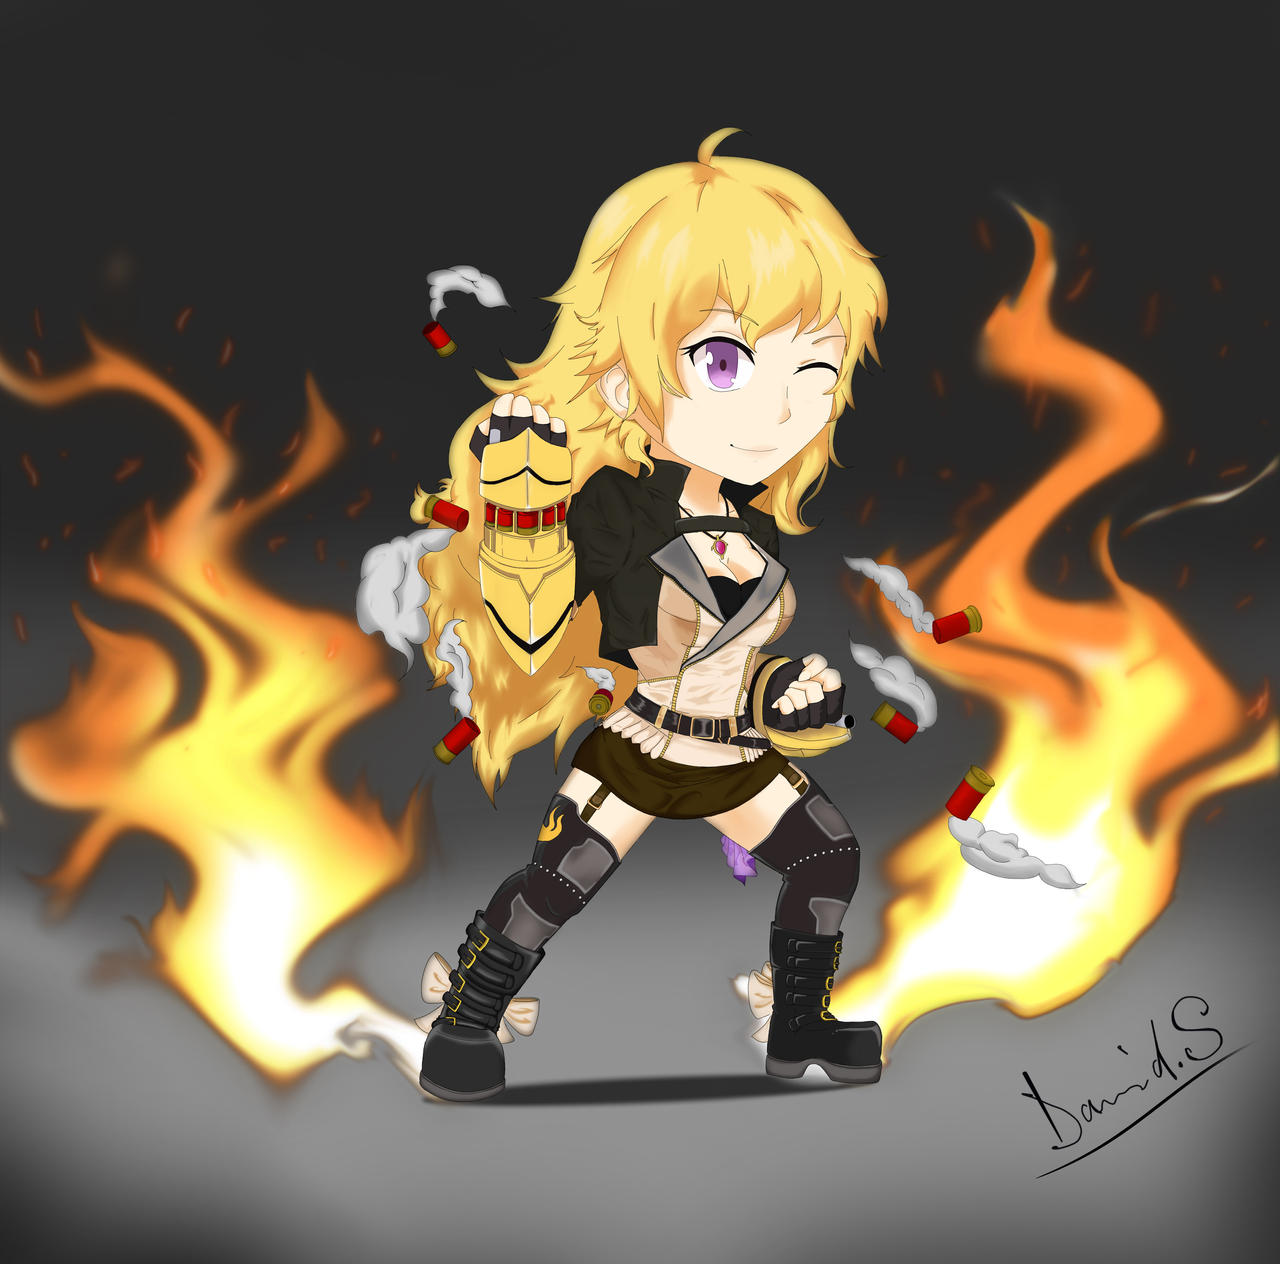 Yang Xiao Long Wallpaper: RWBY: Chibi-Yang Xiao Long (Colored) By Banshee32 On